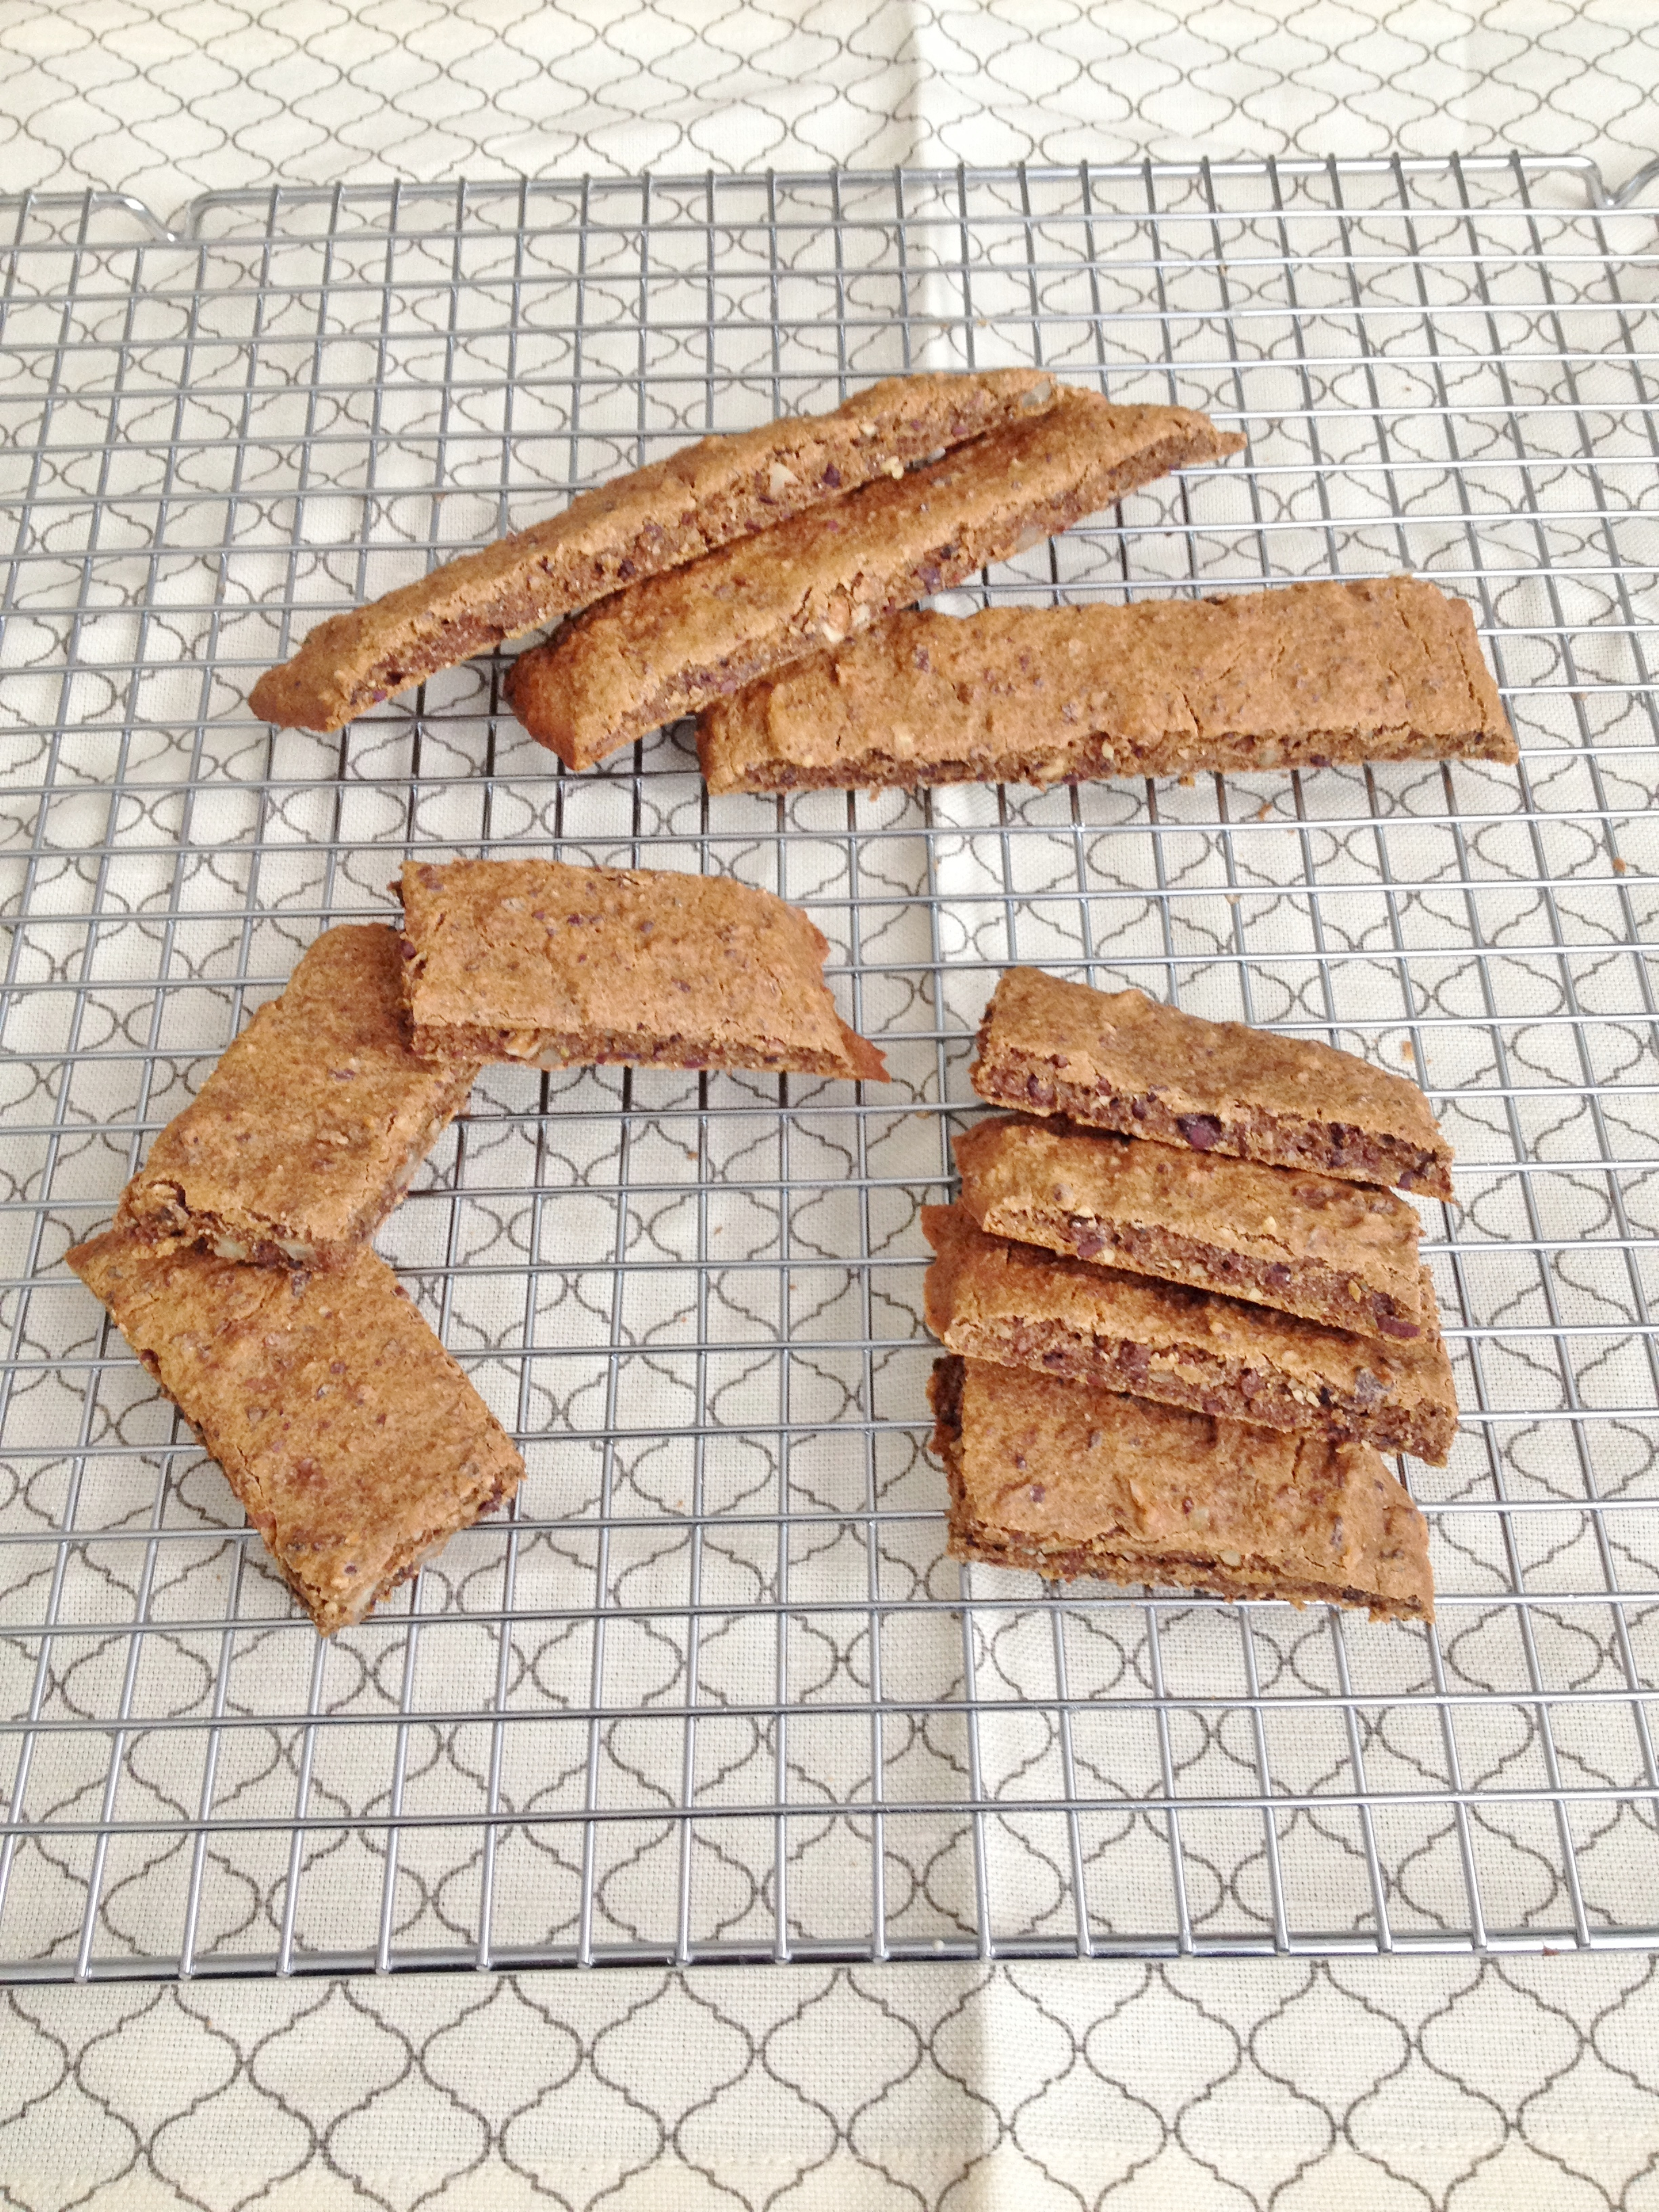 Vegan & Gluten-free Pecan Coffee Biscotti | Fitting Into Vegan